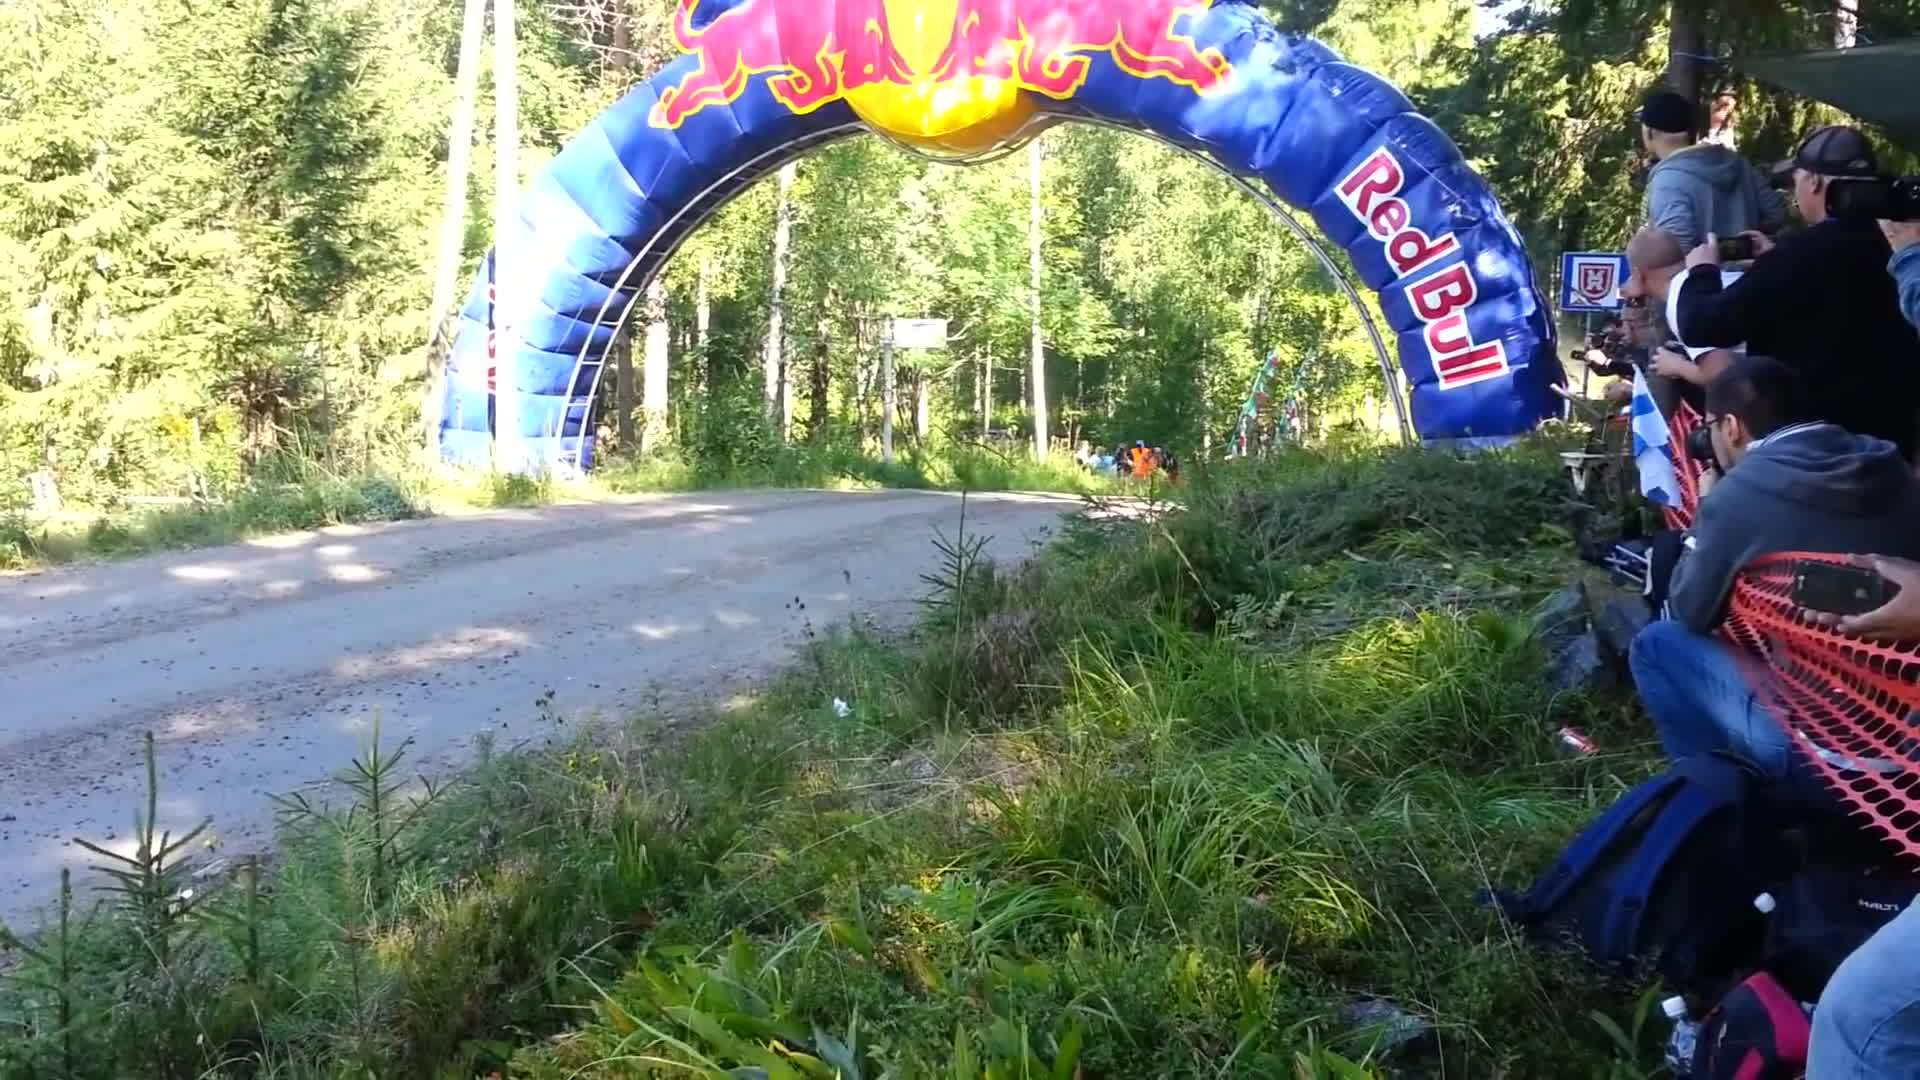 rally, rally finland, wrc, Thierry Neuville Jump @ 2013 Rally Finland GIFs